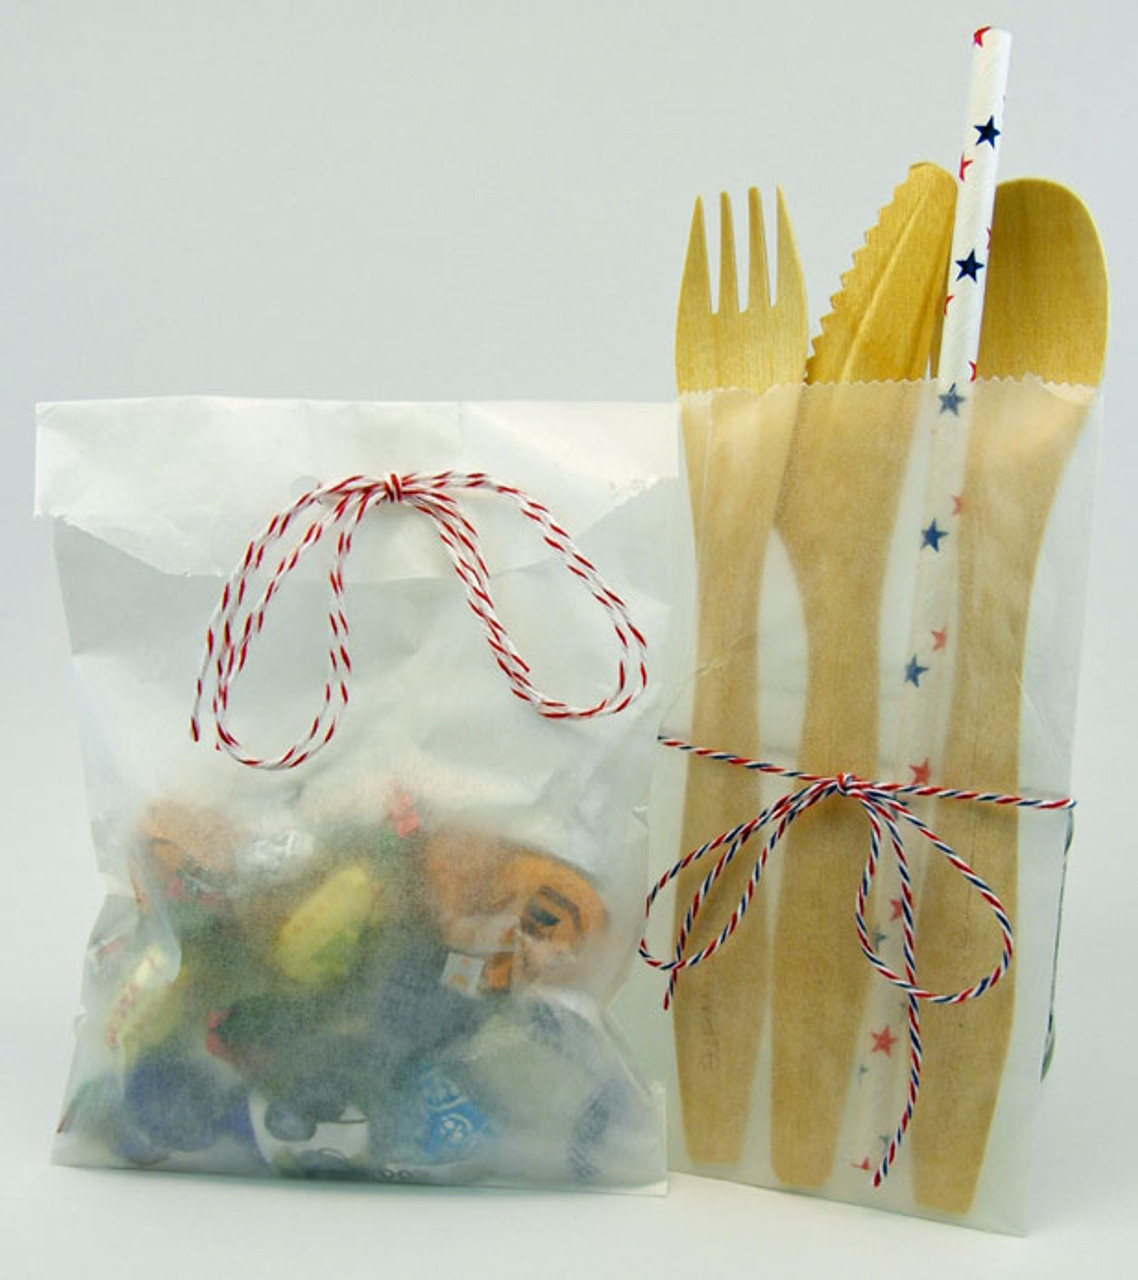 Aspenware Cutlery & Candy in Glassine Paper Bags.  Cotton Bakers Twine for Packaging.